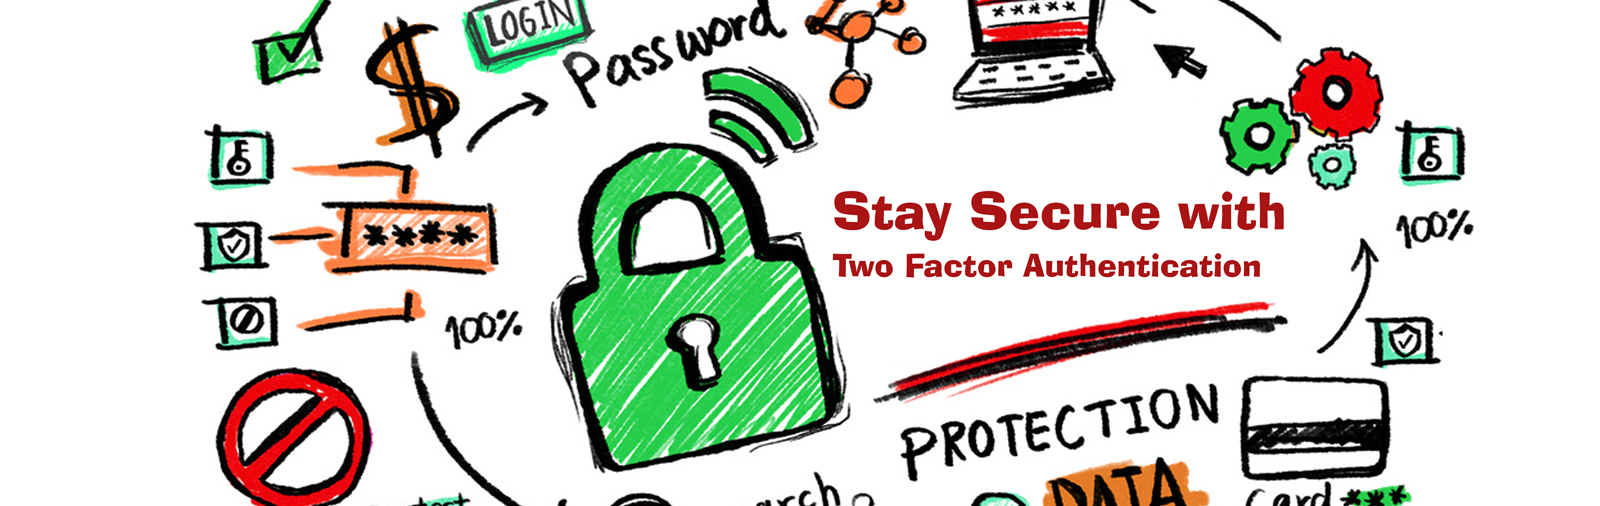 Stay Secure with Two Factor Authentication Security Method